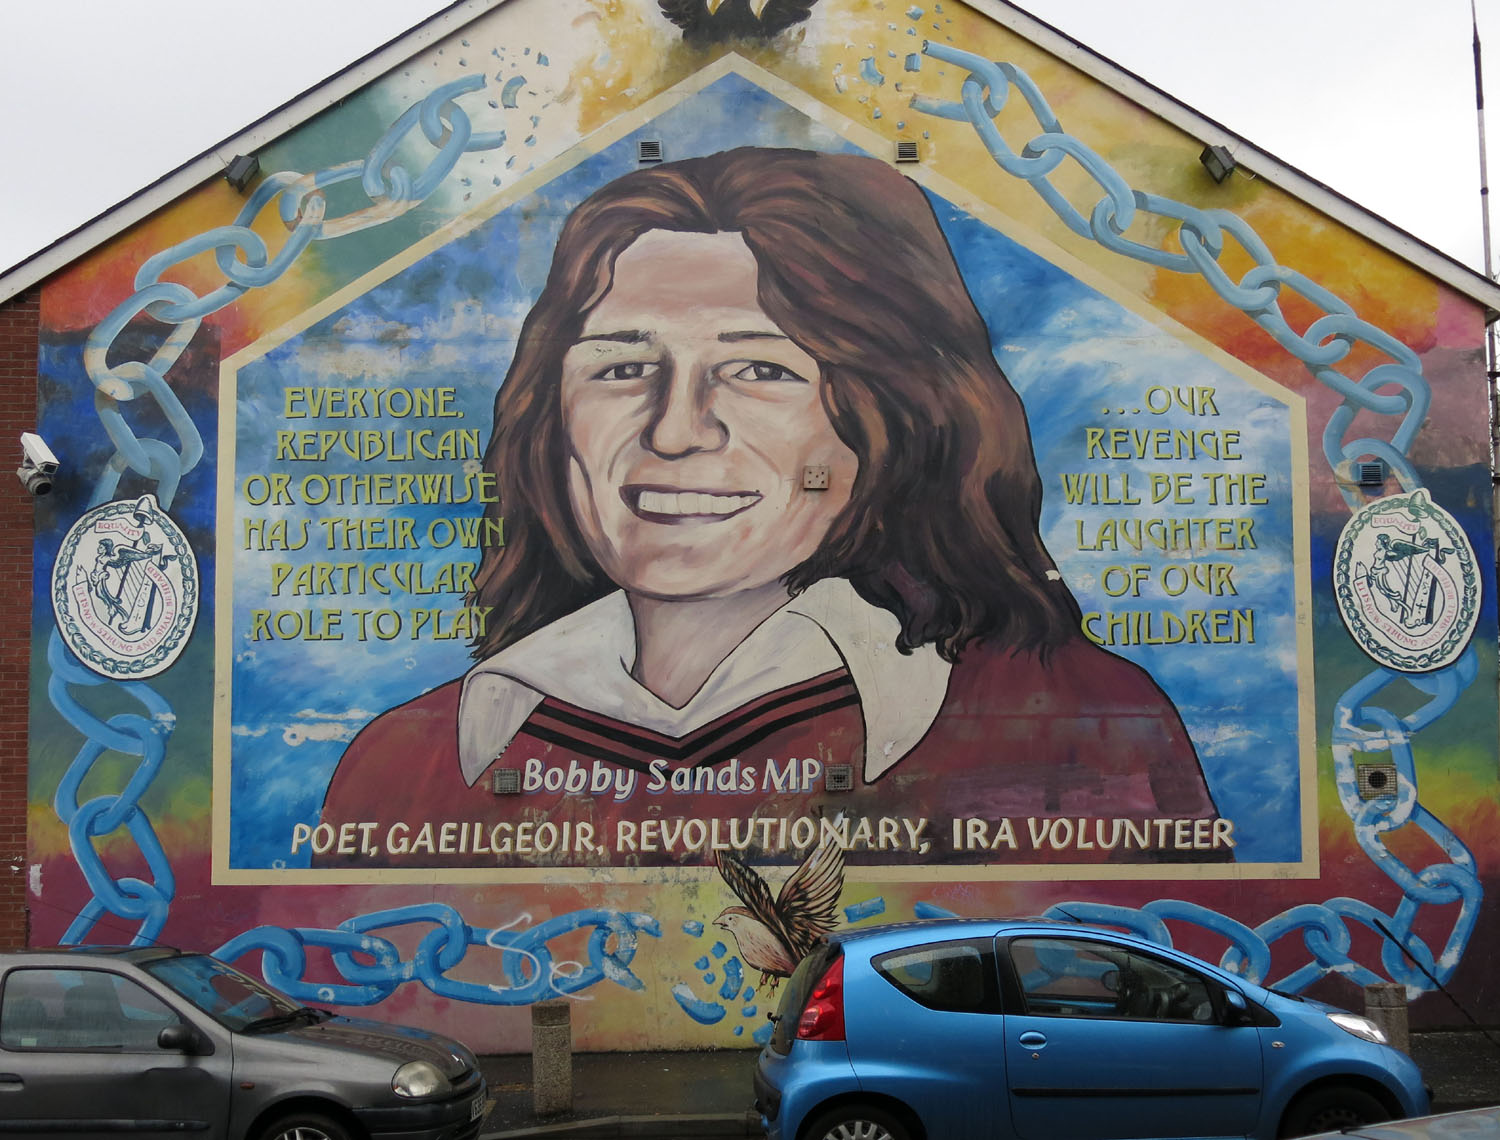 Northern-Ireland-Belfast-The-Troubles-Republican-Mural-Bobby-Sands